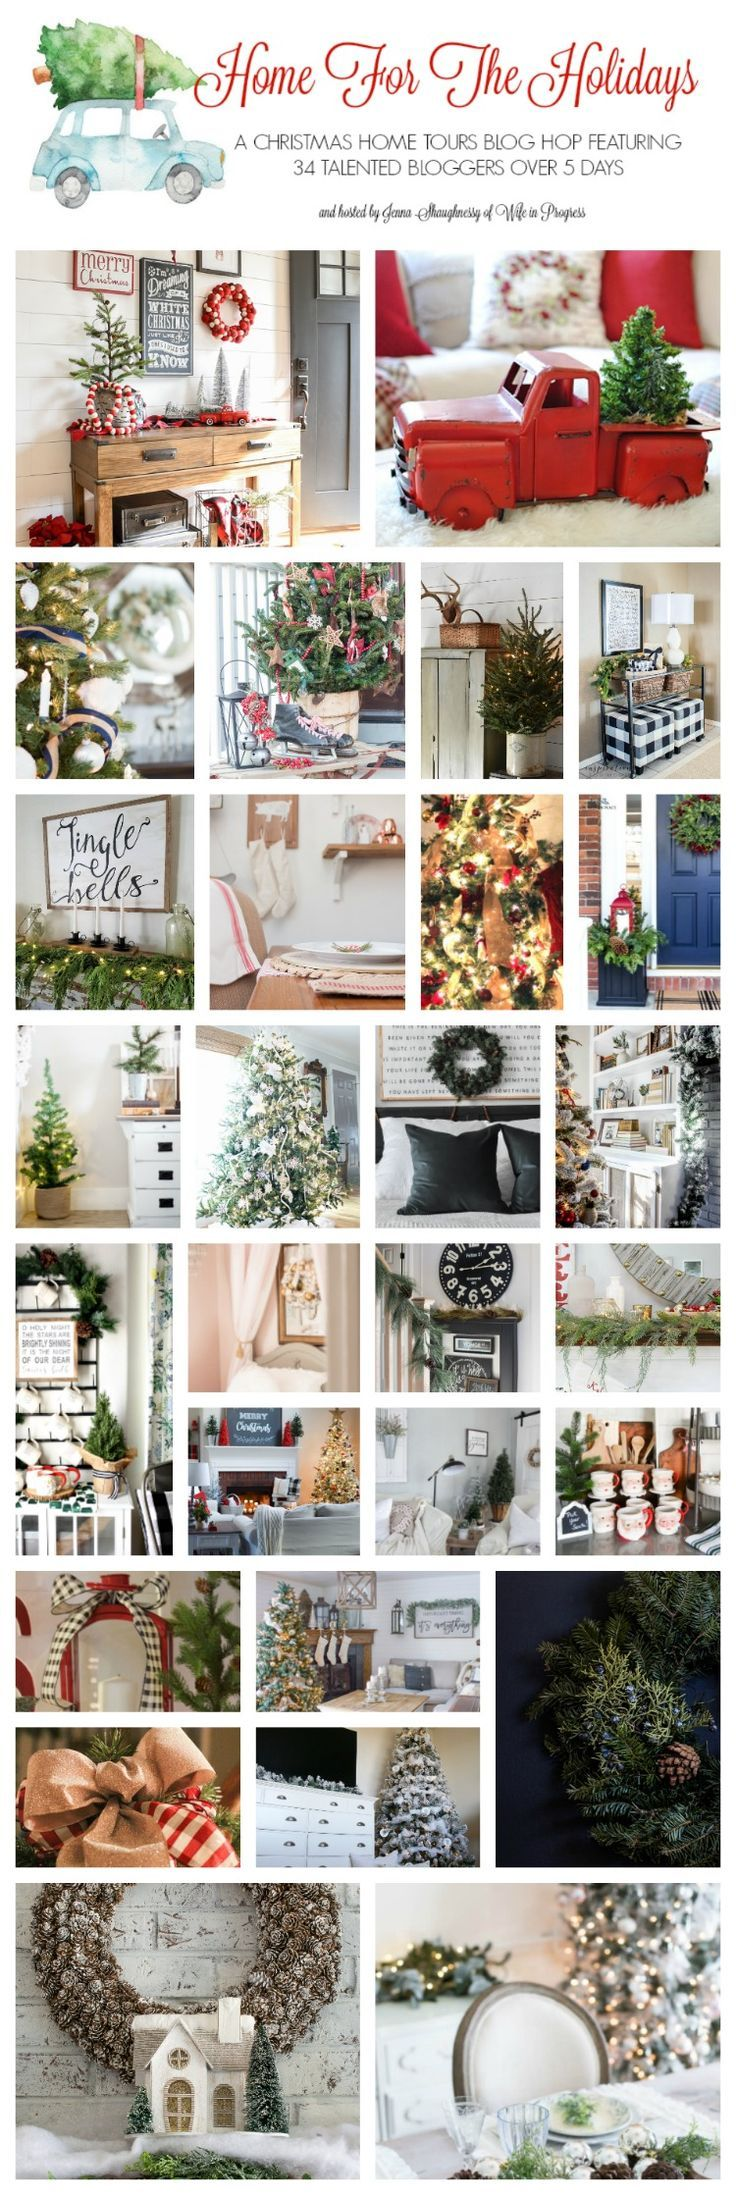 TONS of Christmas decorating ideas for the